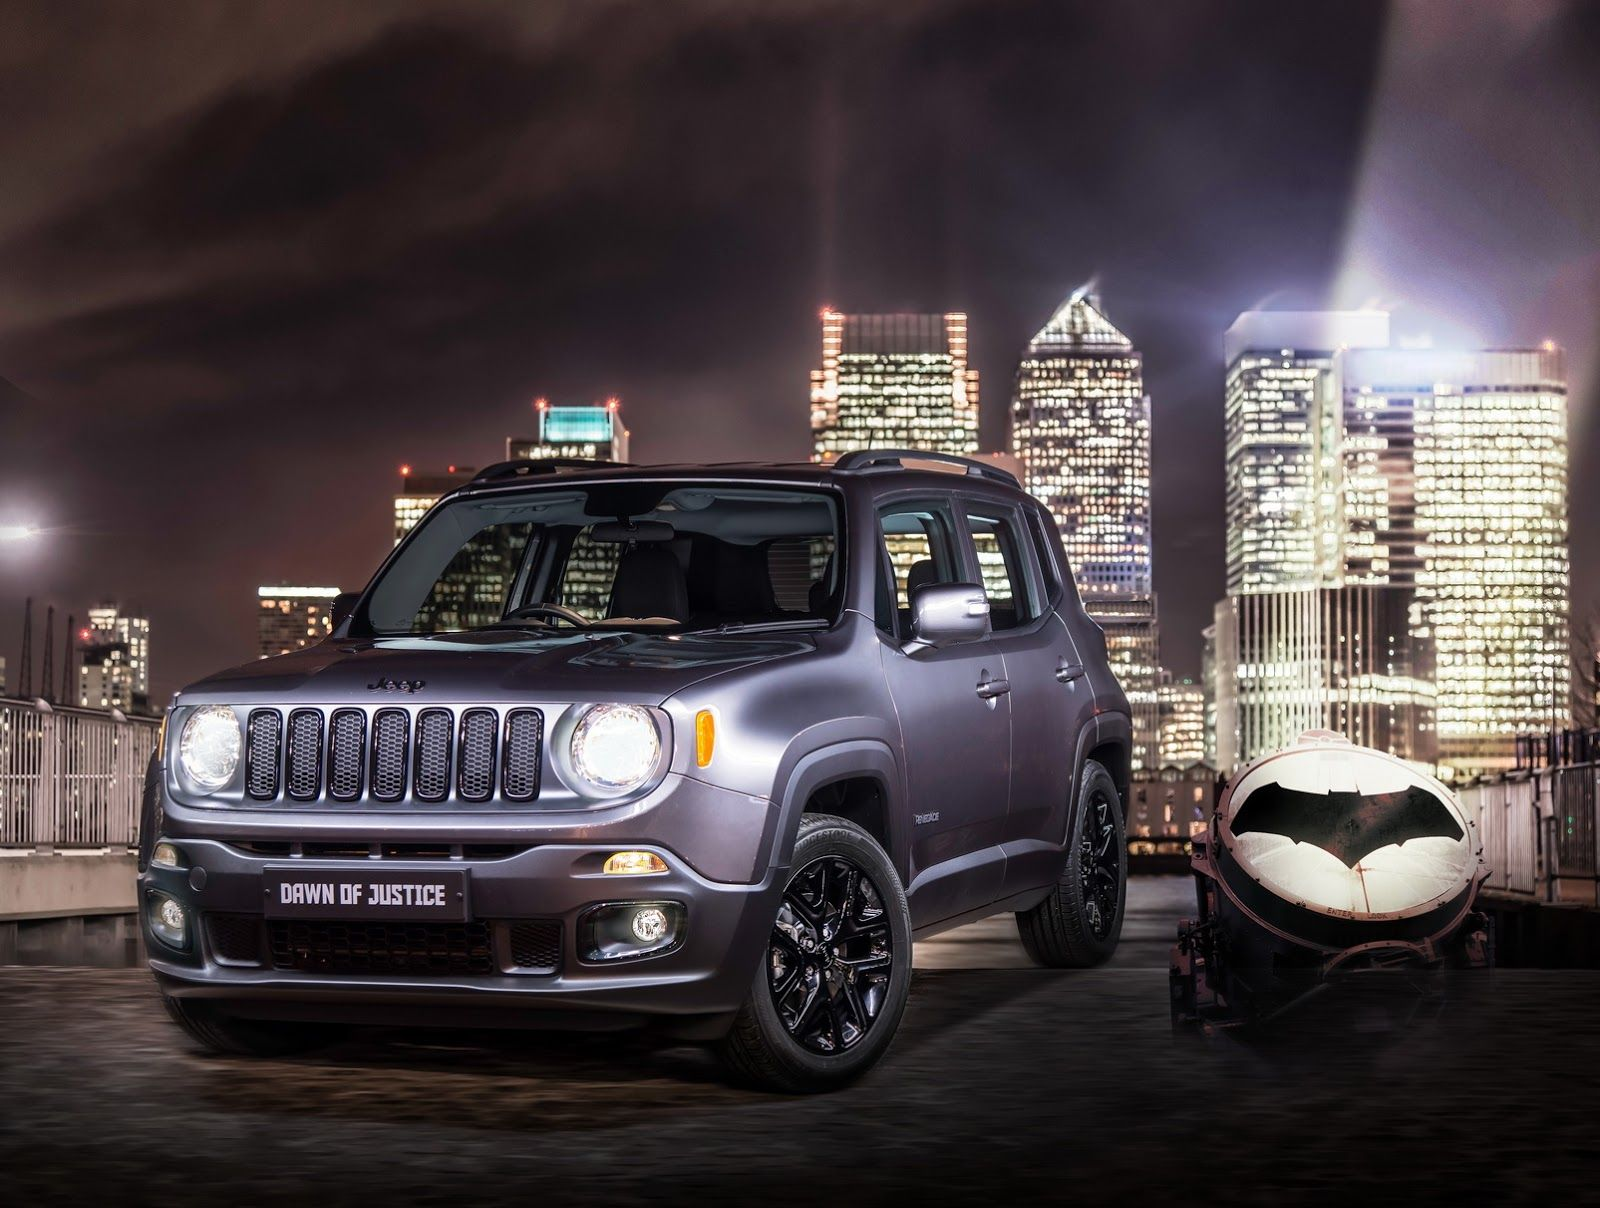 Jeep Renegade Dawn Of Justice Priced From 19 495 In The Uk Jeep Renegade Jeep Uk Jeep